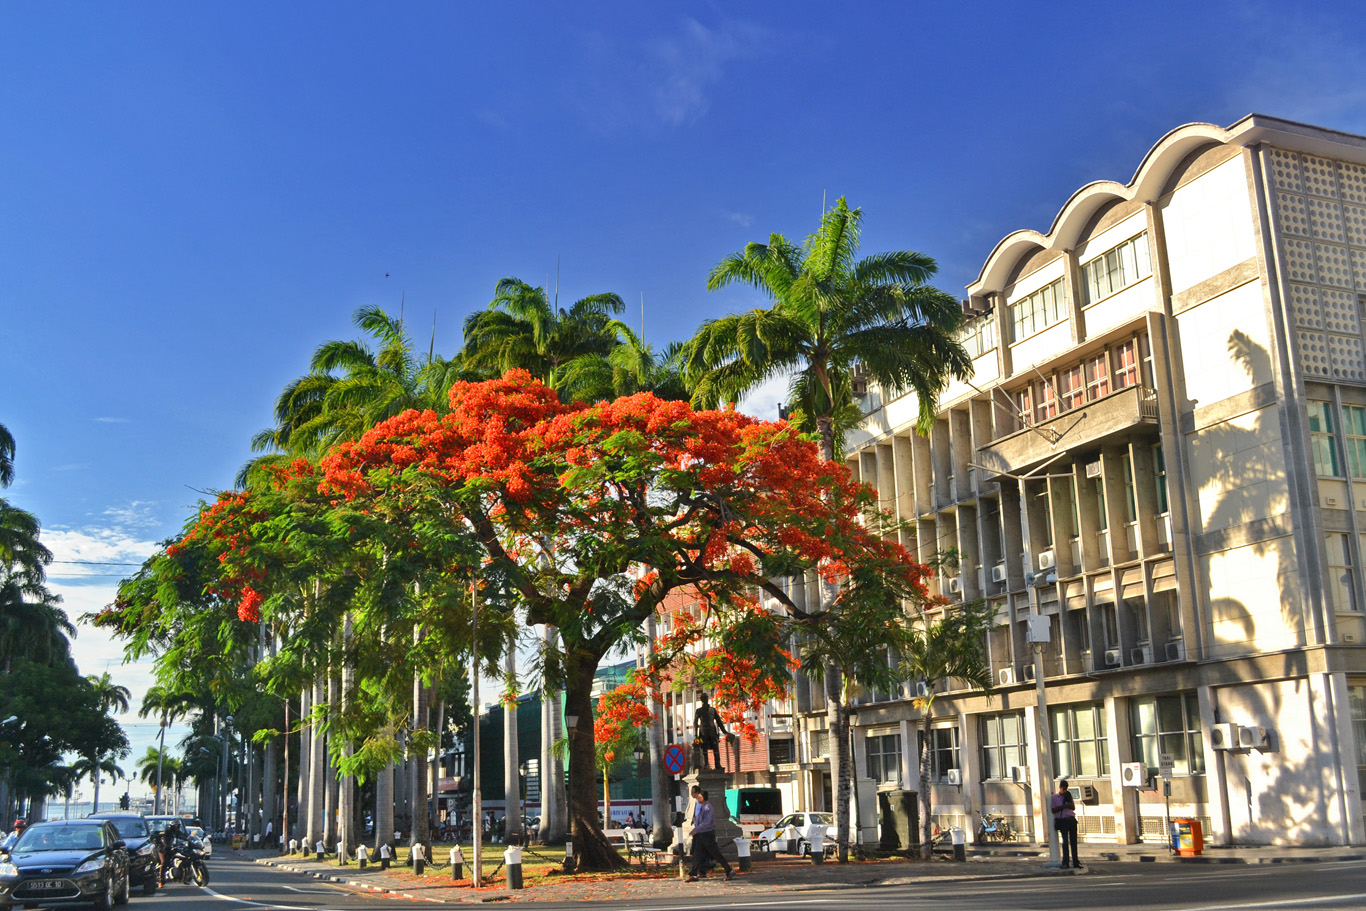 Flame tree in Port Louis